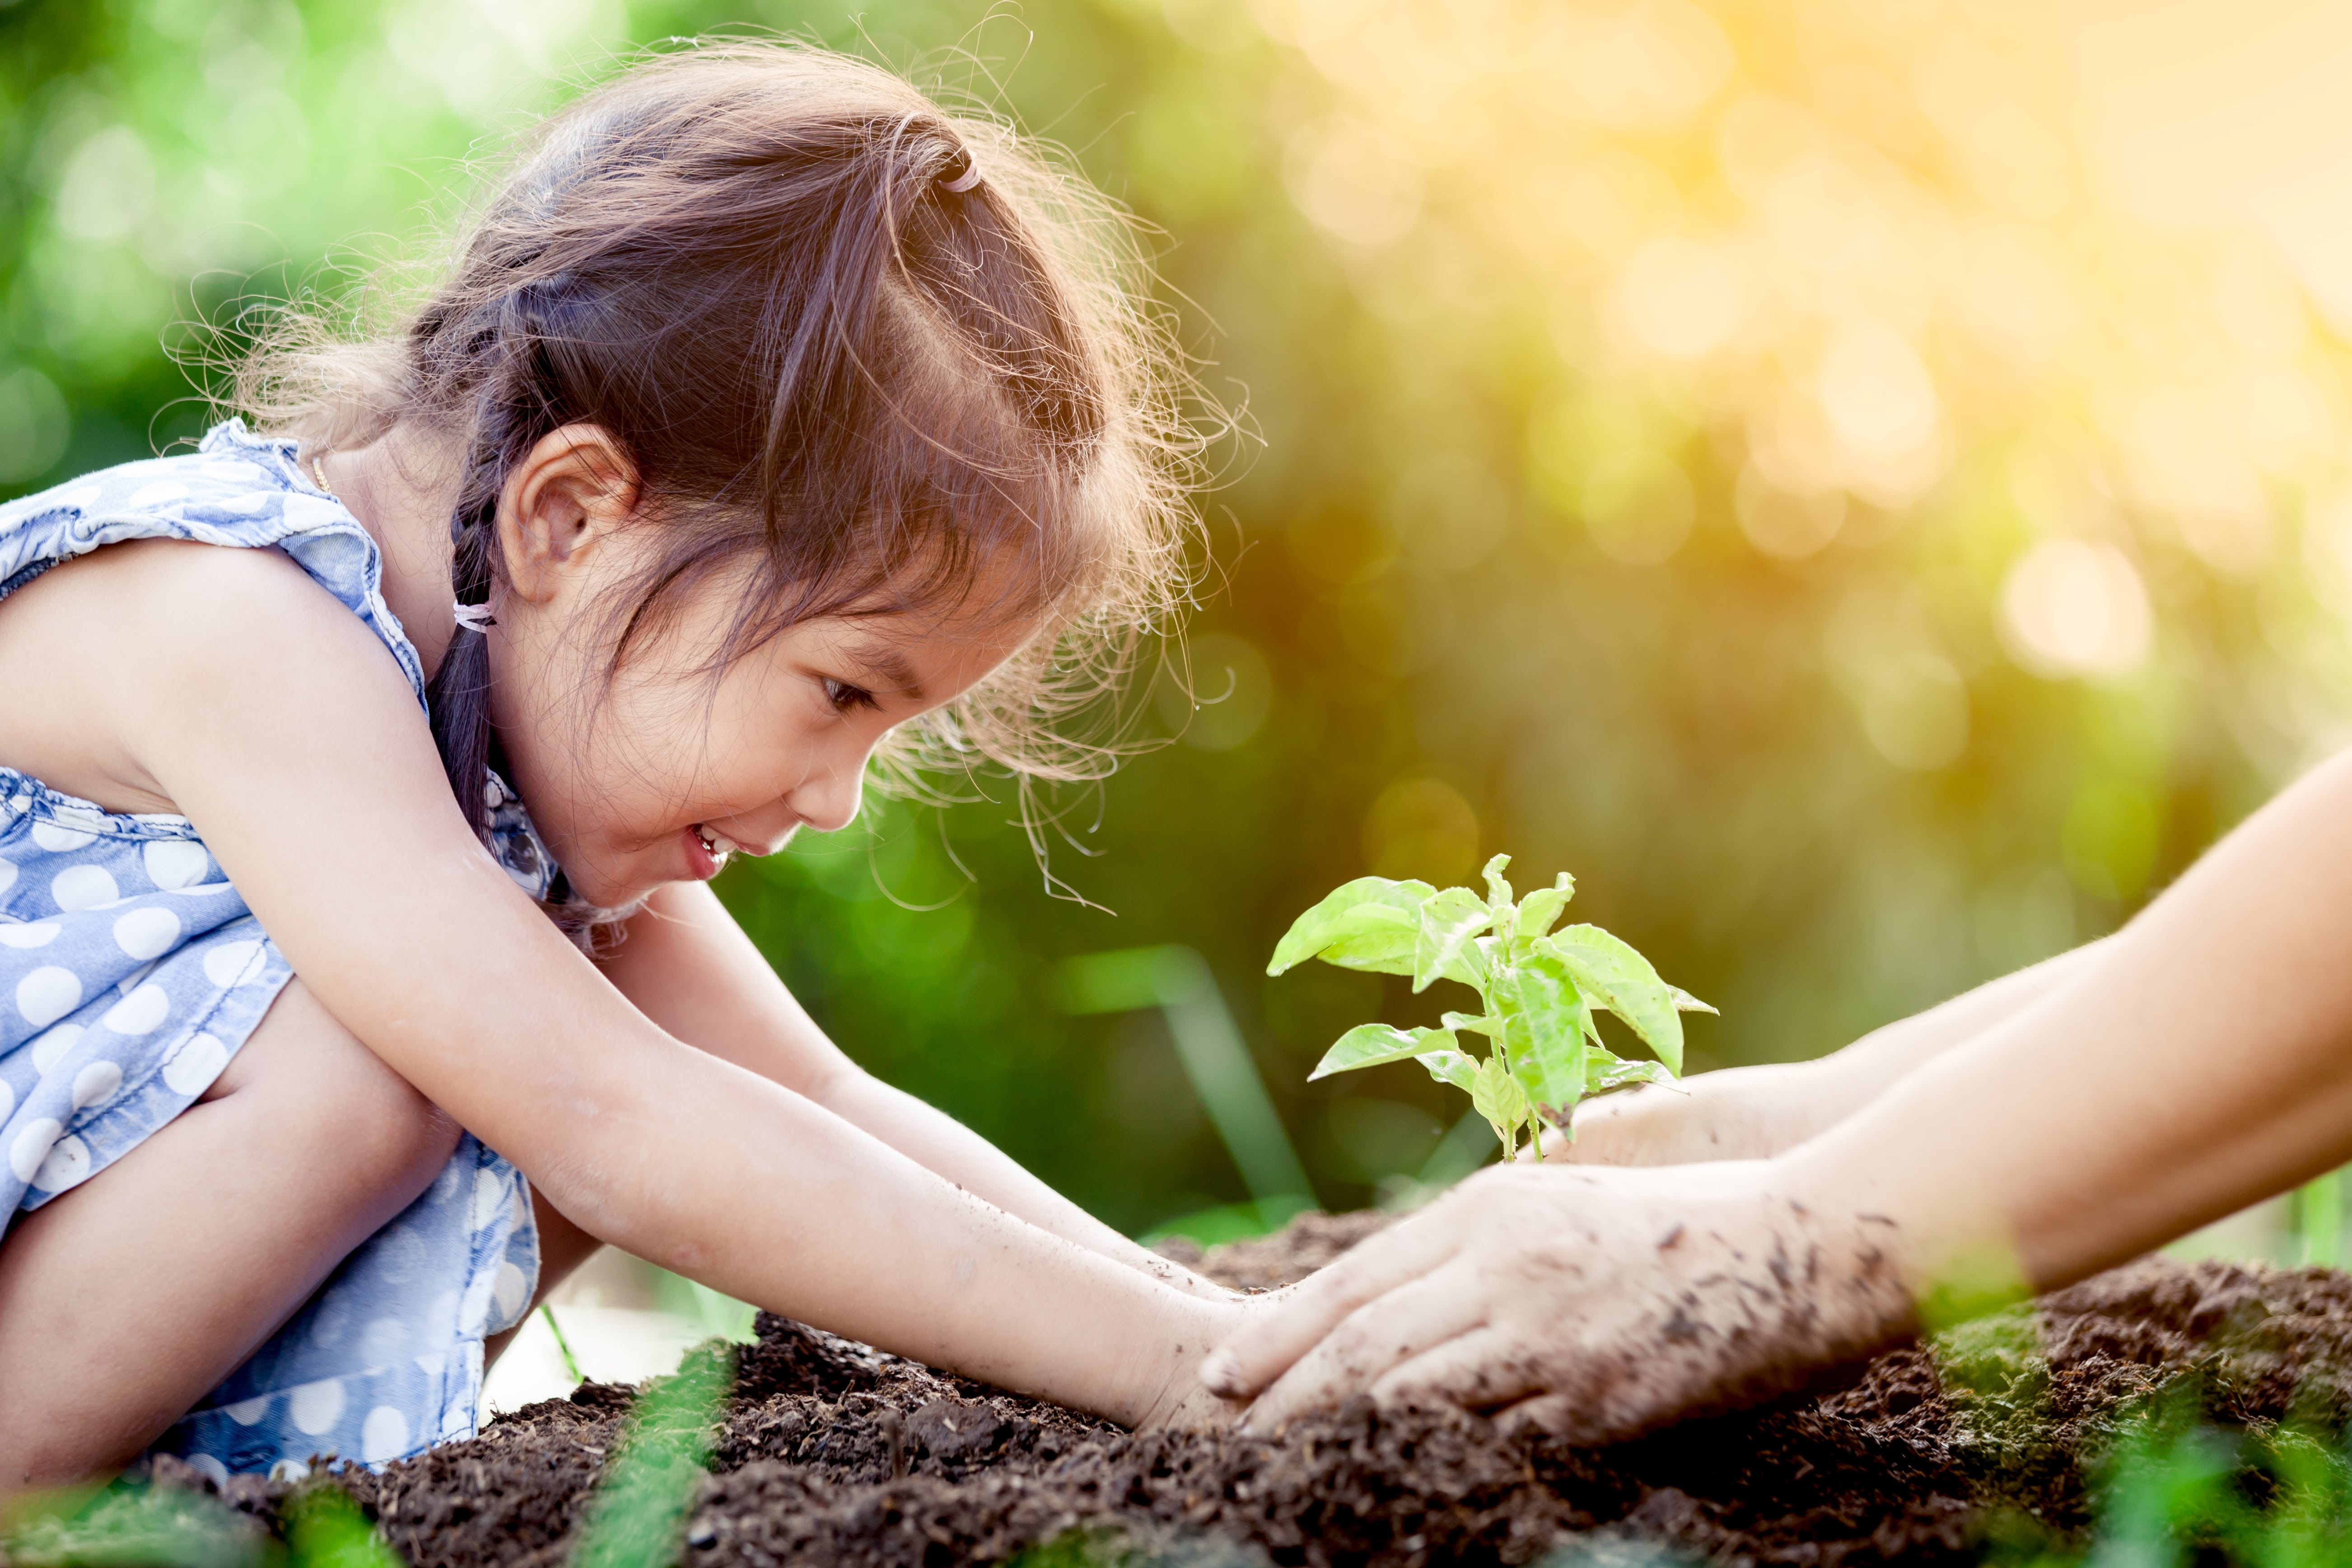 Ways to celebrate Earth Day while social distancing